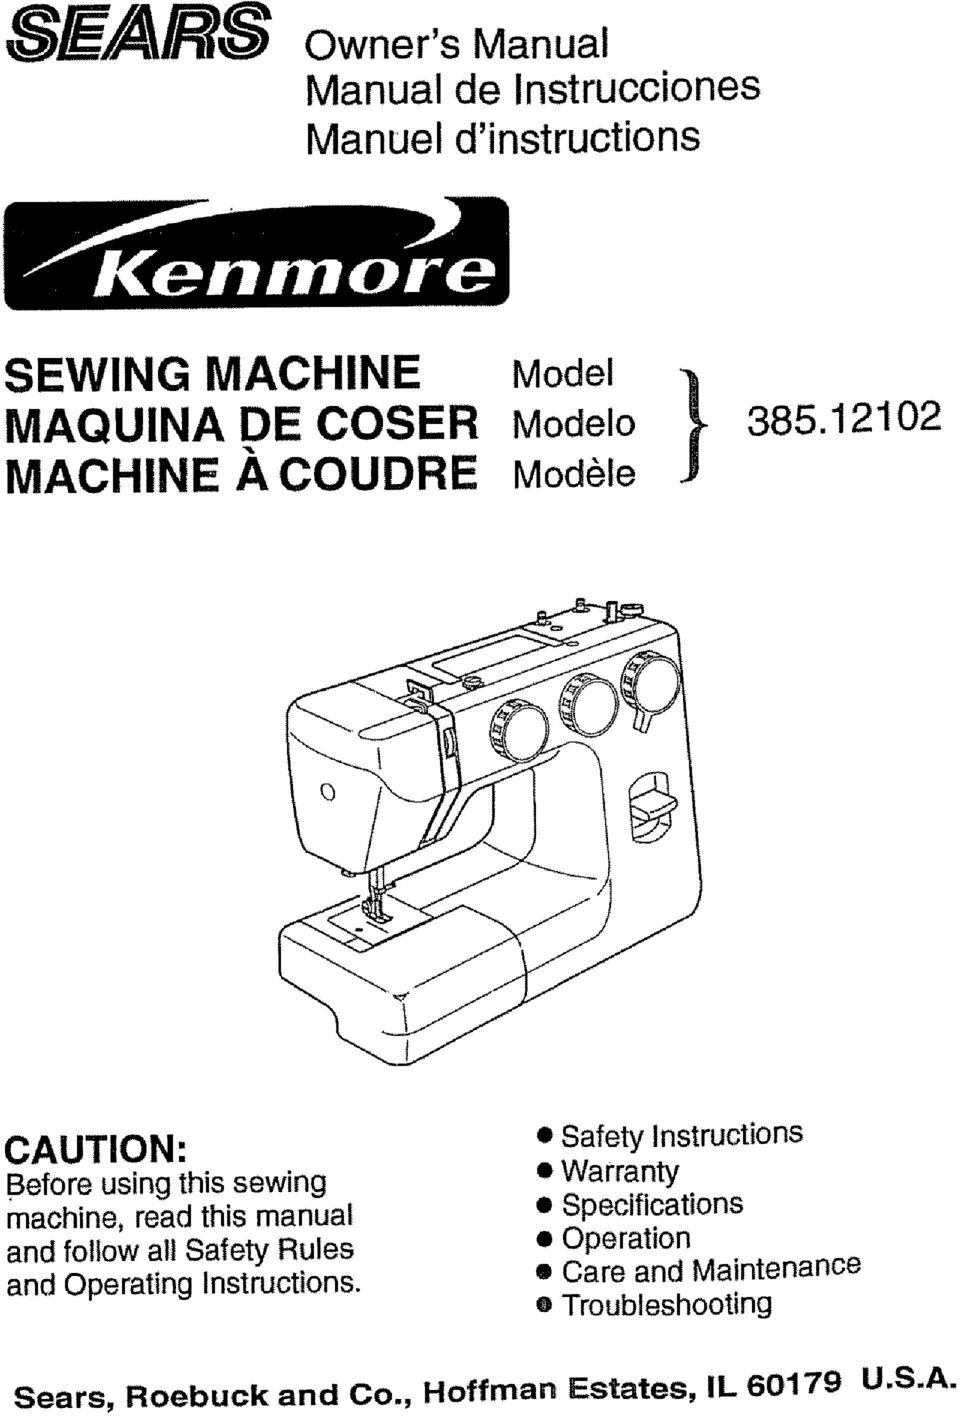 12102 CAUTION: Before using this sewing machine, read this manual and follow all Safety Rules and